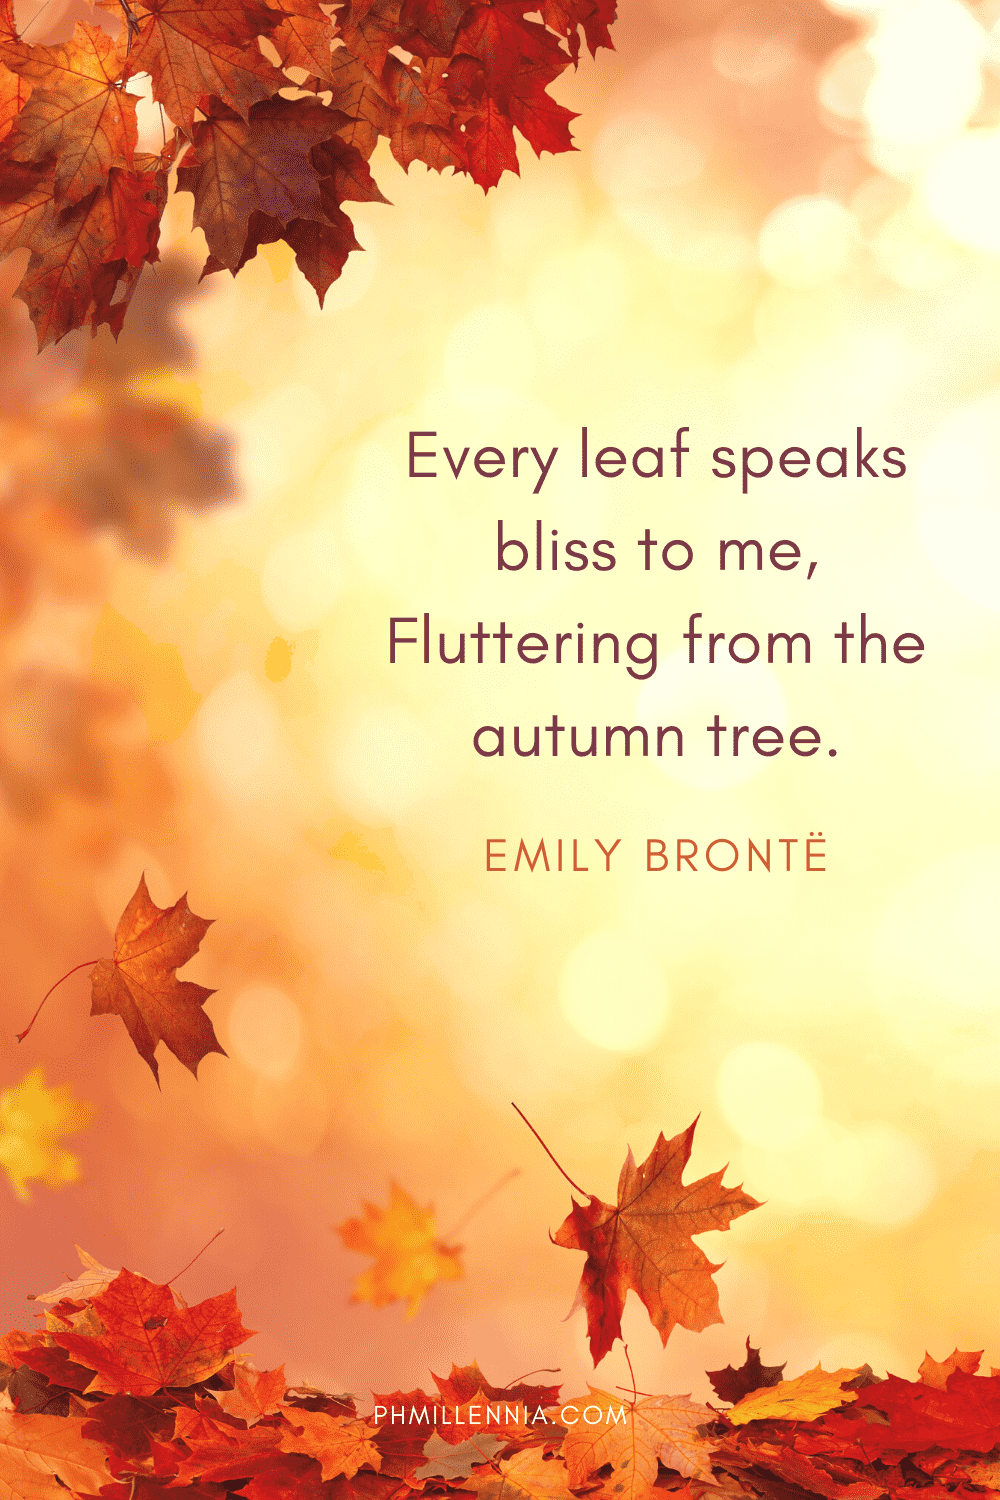 """A graphic featuring an autumn quote/fall saying over an image of autumn/fall season leaves falling, drifting, floating from downwards, designed as a Pinterest Pin for the article """"199 Autumn Quotes to Fall Deeply and Spectacularly in Love With"""" on phmillennia.com"""